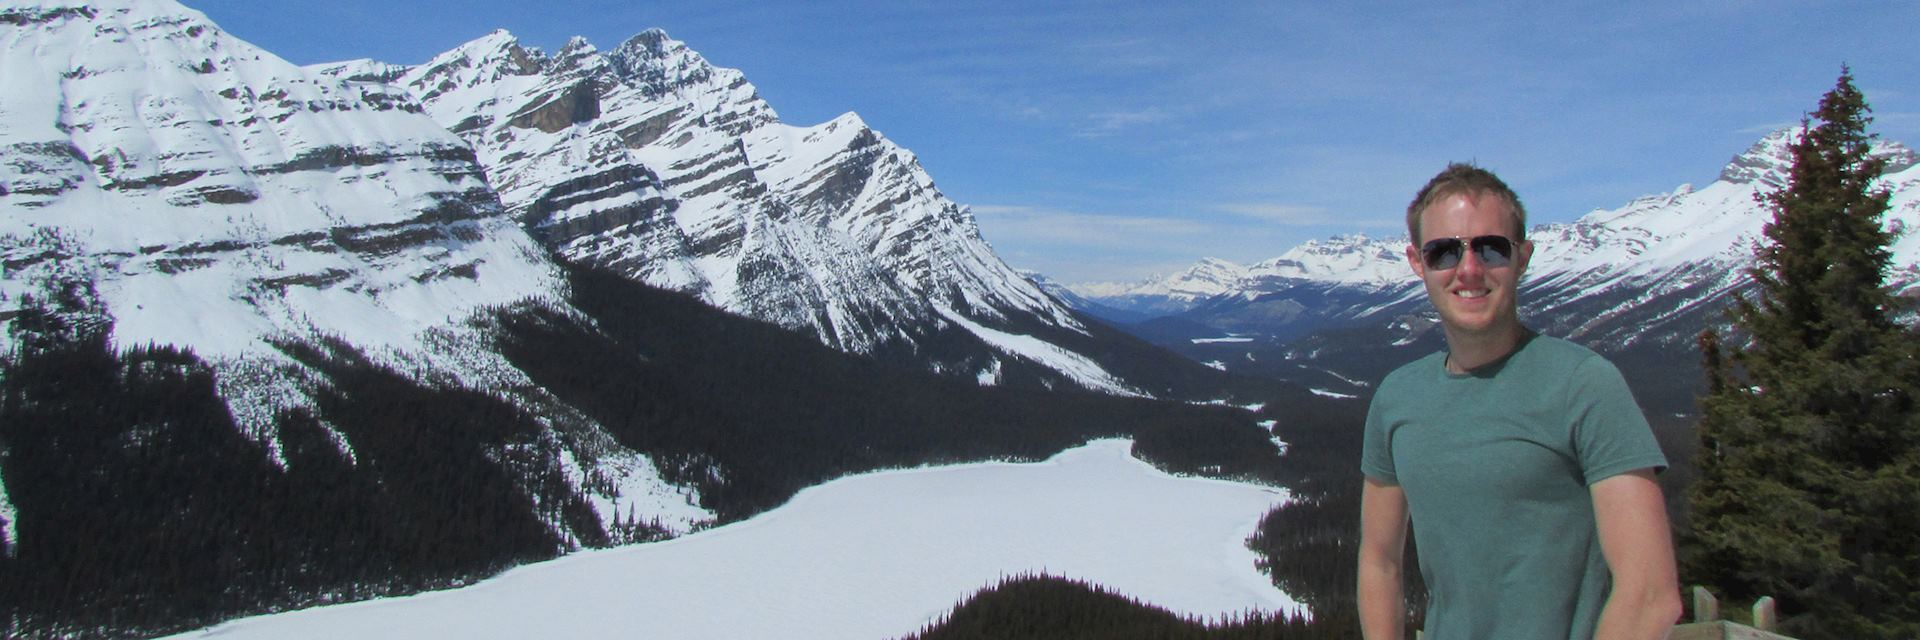 Mark enjoying the scenic viewpoint of Peyto Lake, Canada